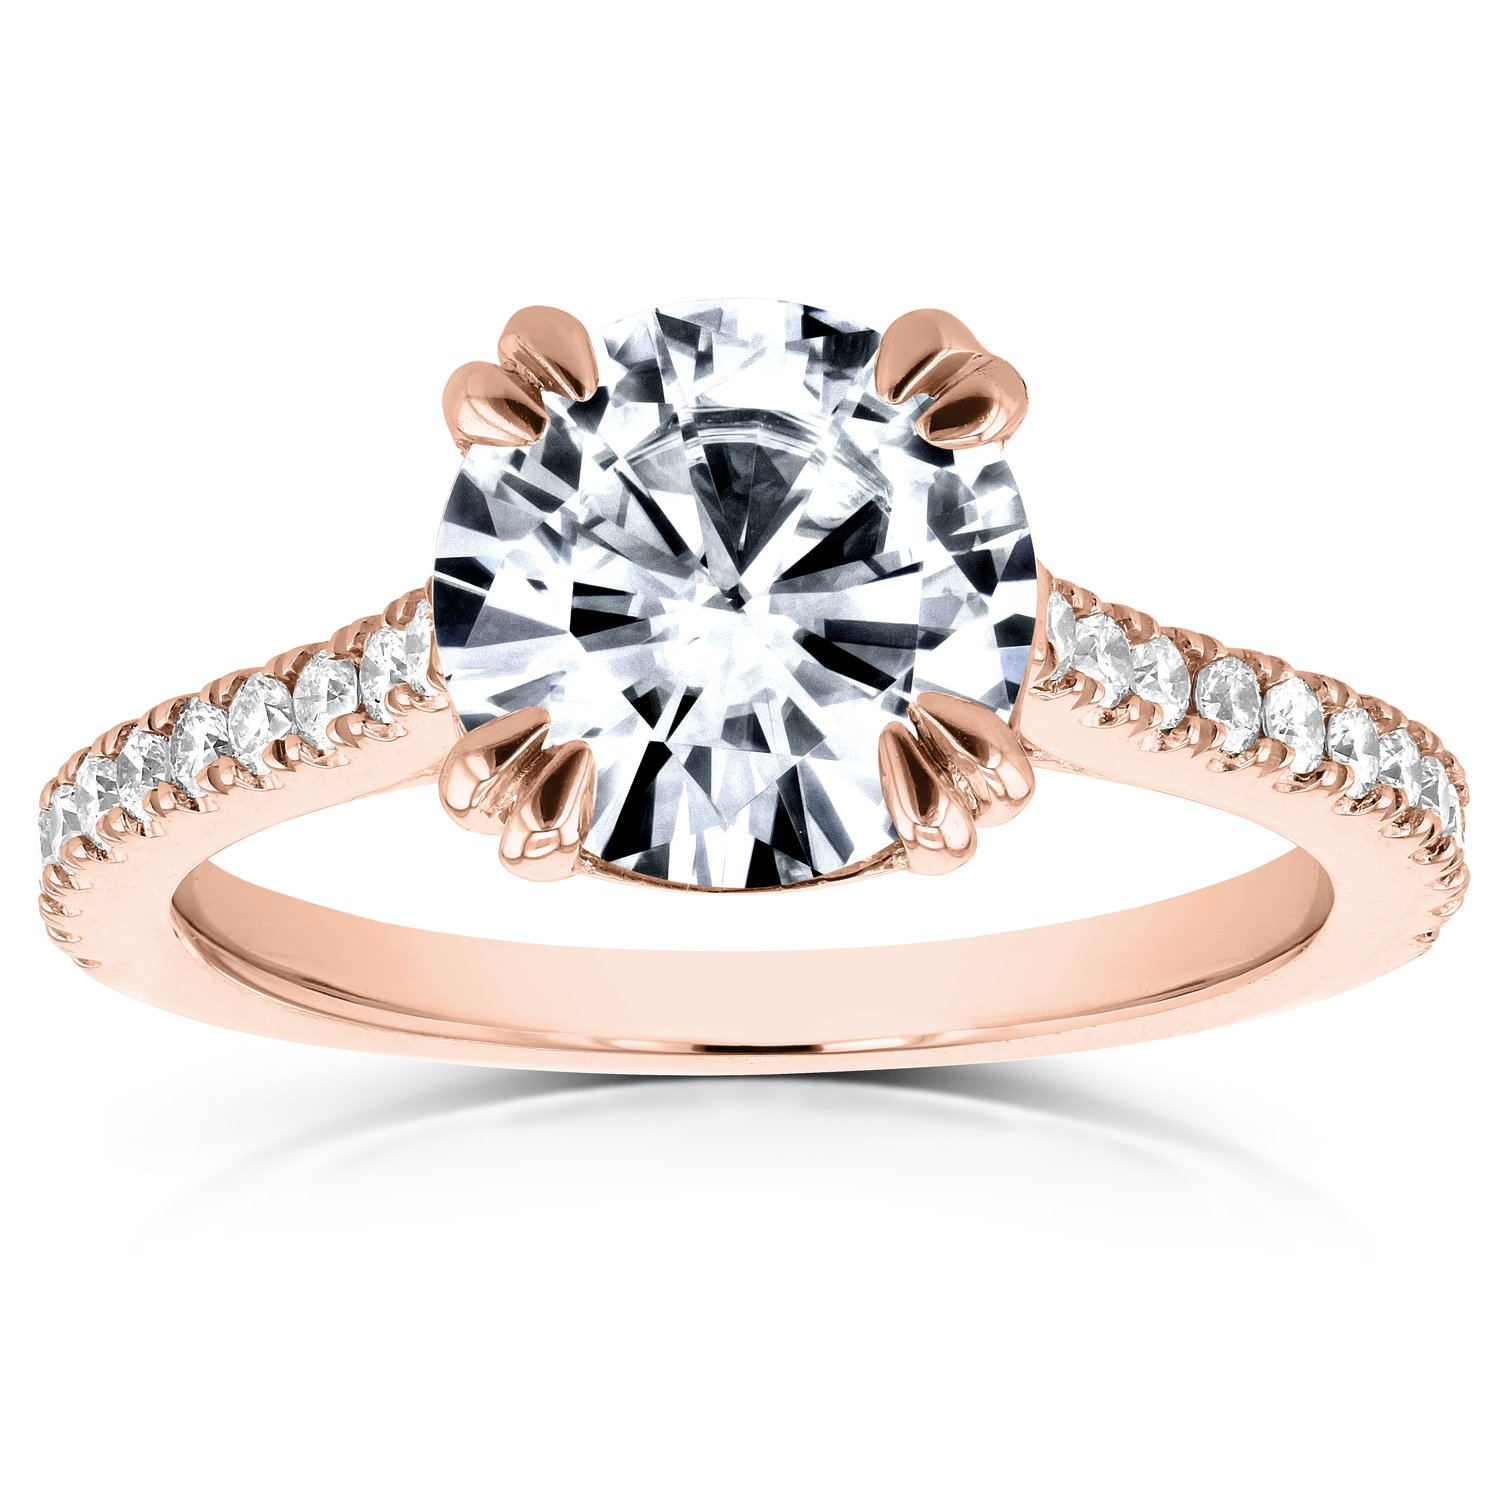 14k Rose Gold Forever One (D-F) Round Moissanite & Diamond Engagement Ring 2 1/5 CTW